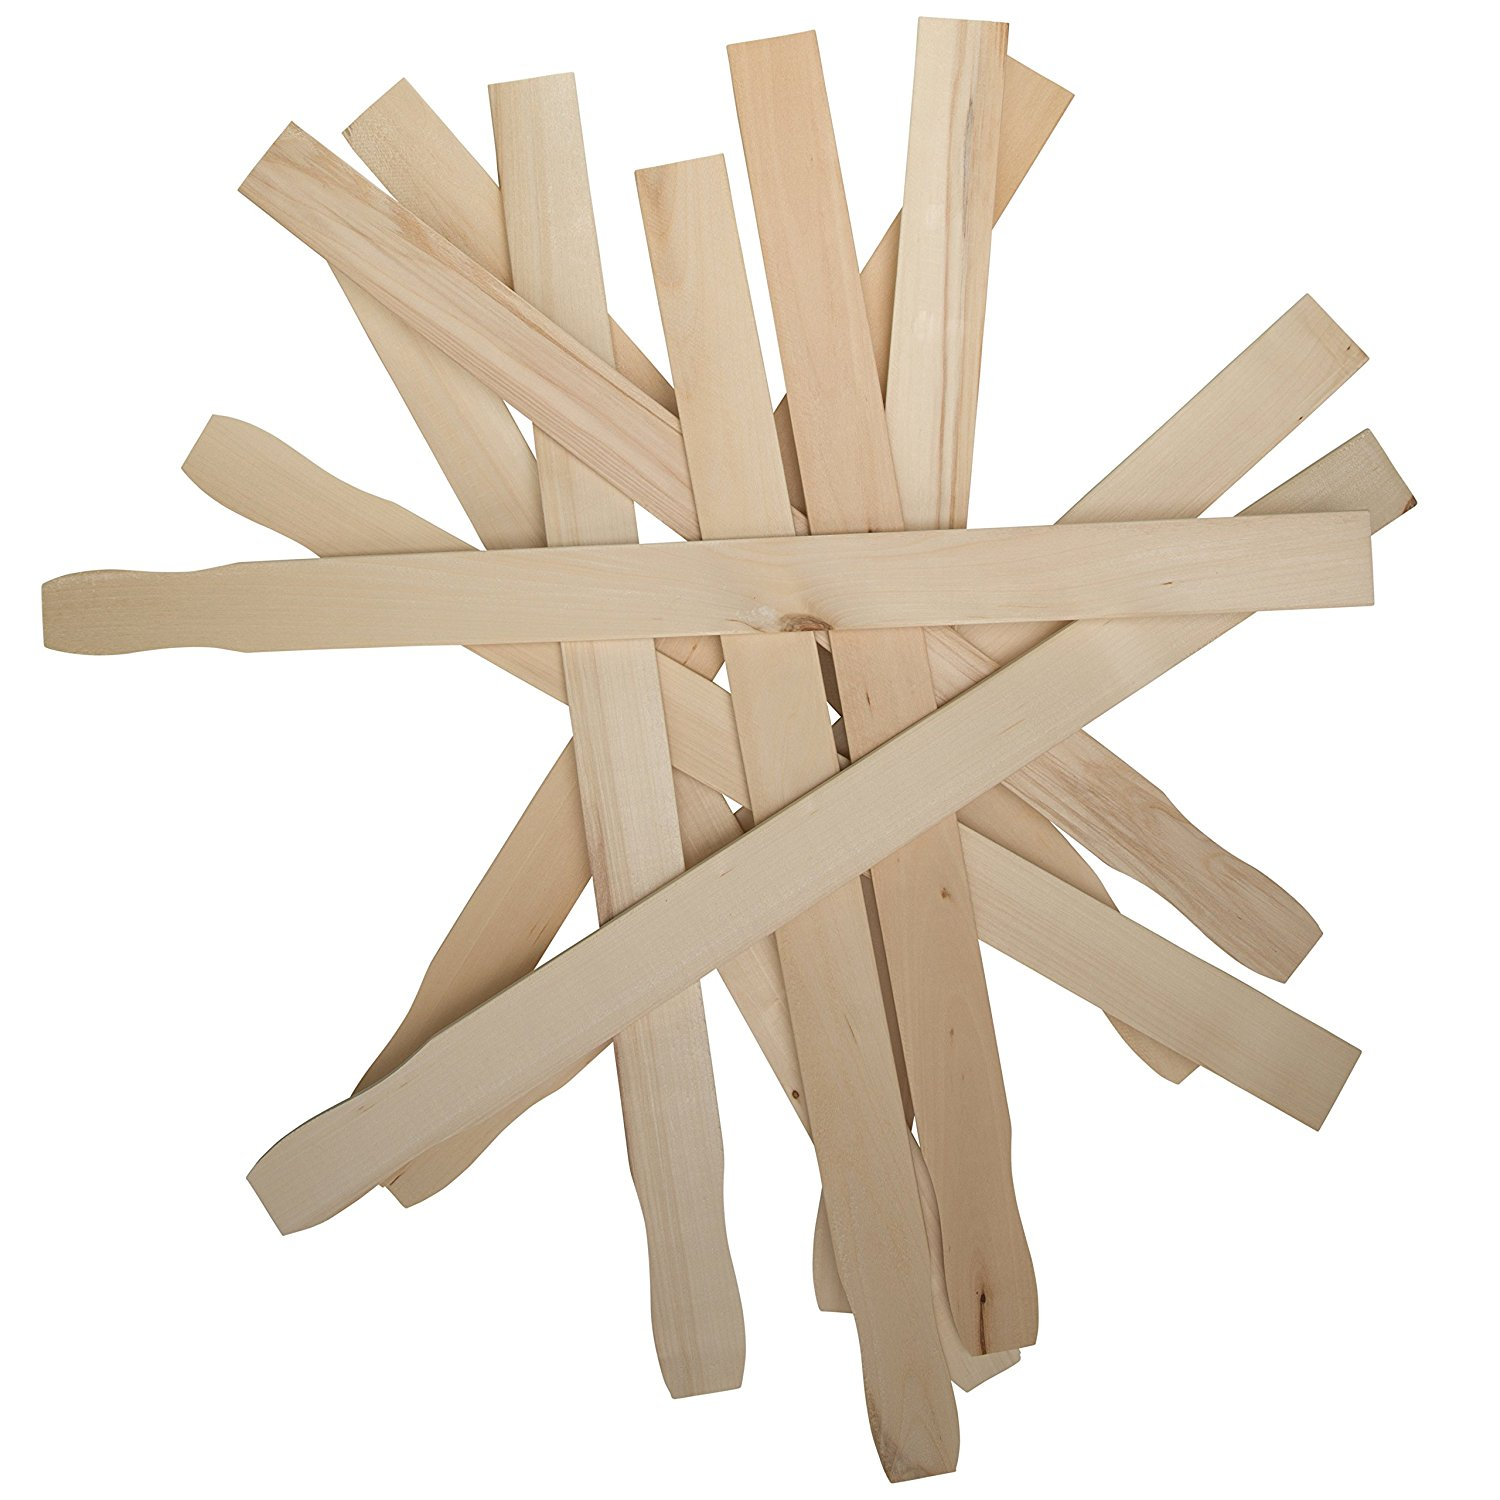 12 inch Paint Stir Sticks | Paint Stirring Sticks | 12 inch Paint Paddle | Epoxy or Resin | Garden or Library Marker | Wood Crafts | Bulk Pack of 50 Hardwood Stirrers ,Pack of 50 By Woodpeckers